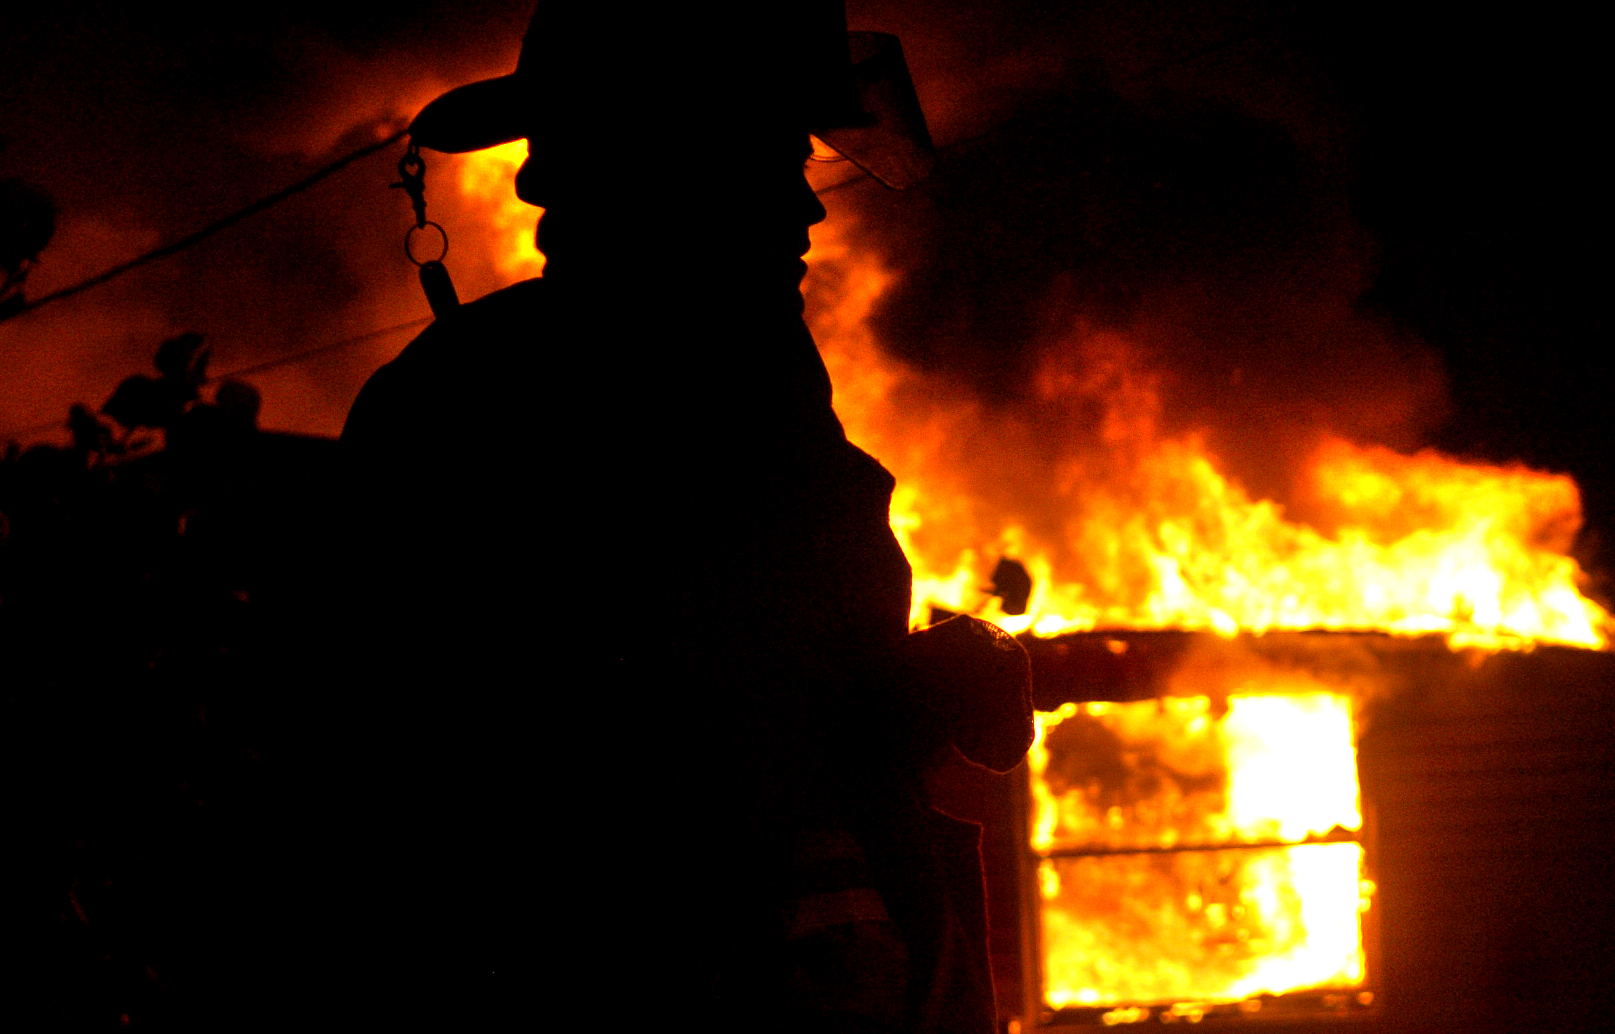 A Nokomis volunteer firefighter works a mobile home fire at 116 Ruby Ave. Wednesday, July 11, 2007. The department sent 26 firefighters, two engines, a tanker and a ladder truck to the blaze which is currently being ruled arson; no one was injured. Set up in the 1950s and sustained by dues and donations, Nokomis' fire department might soon be absorbed by the fire department of Sarasota County because of population growth.